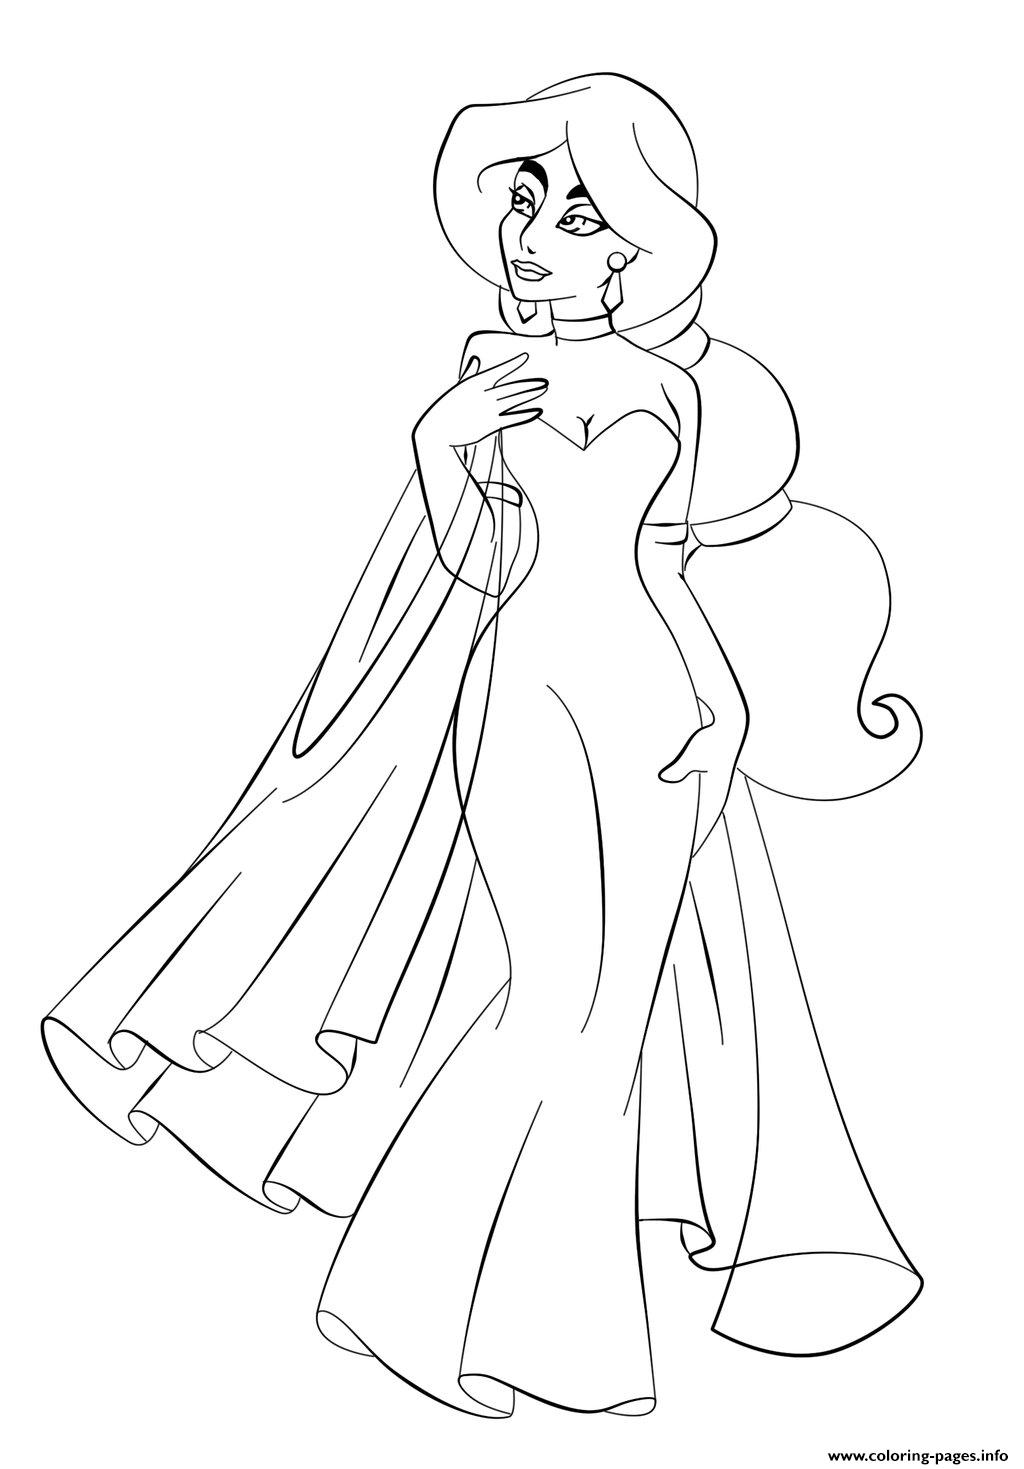 disney wedding coloring pages - photo#27